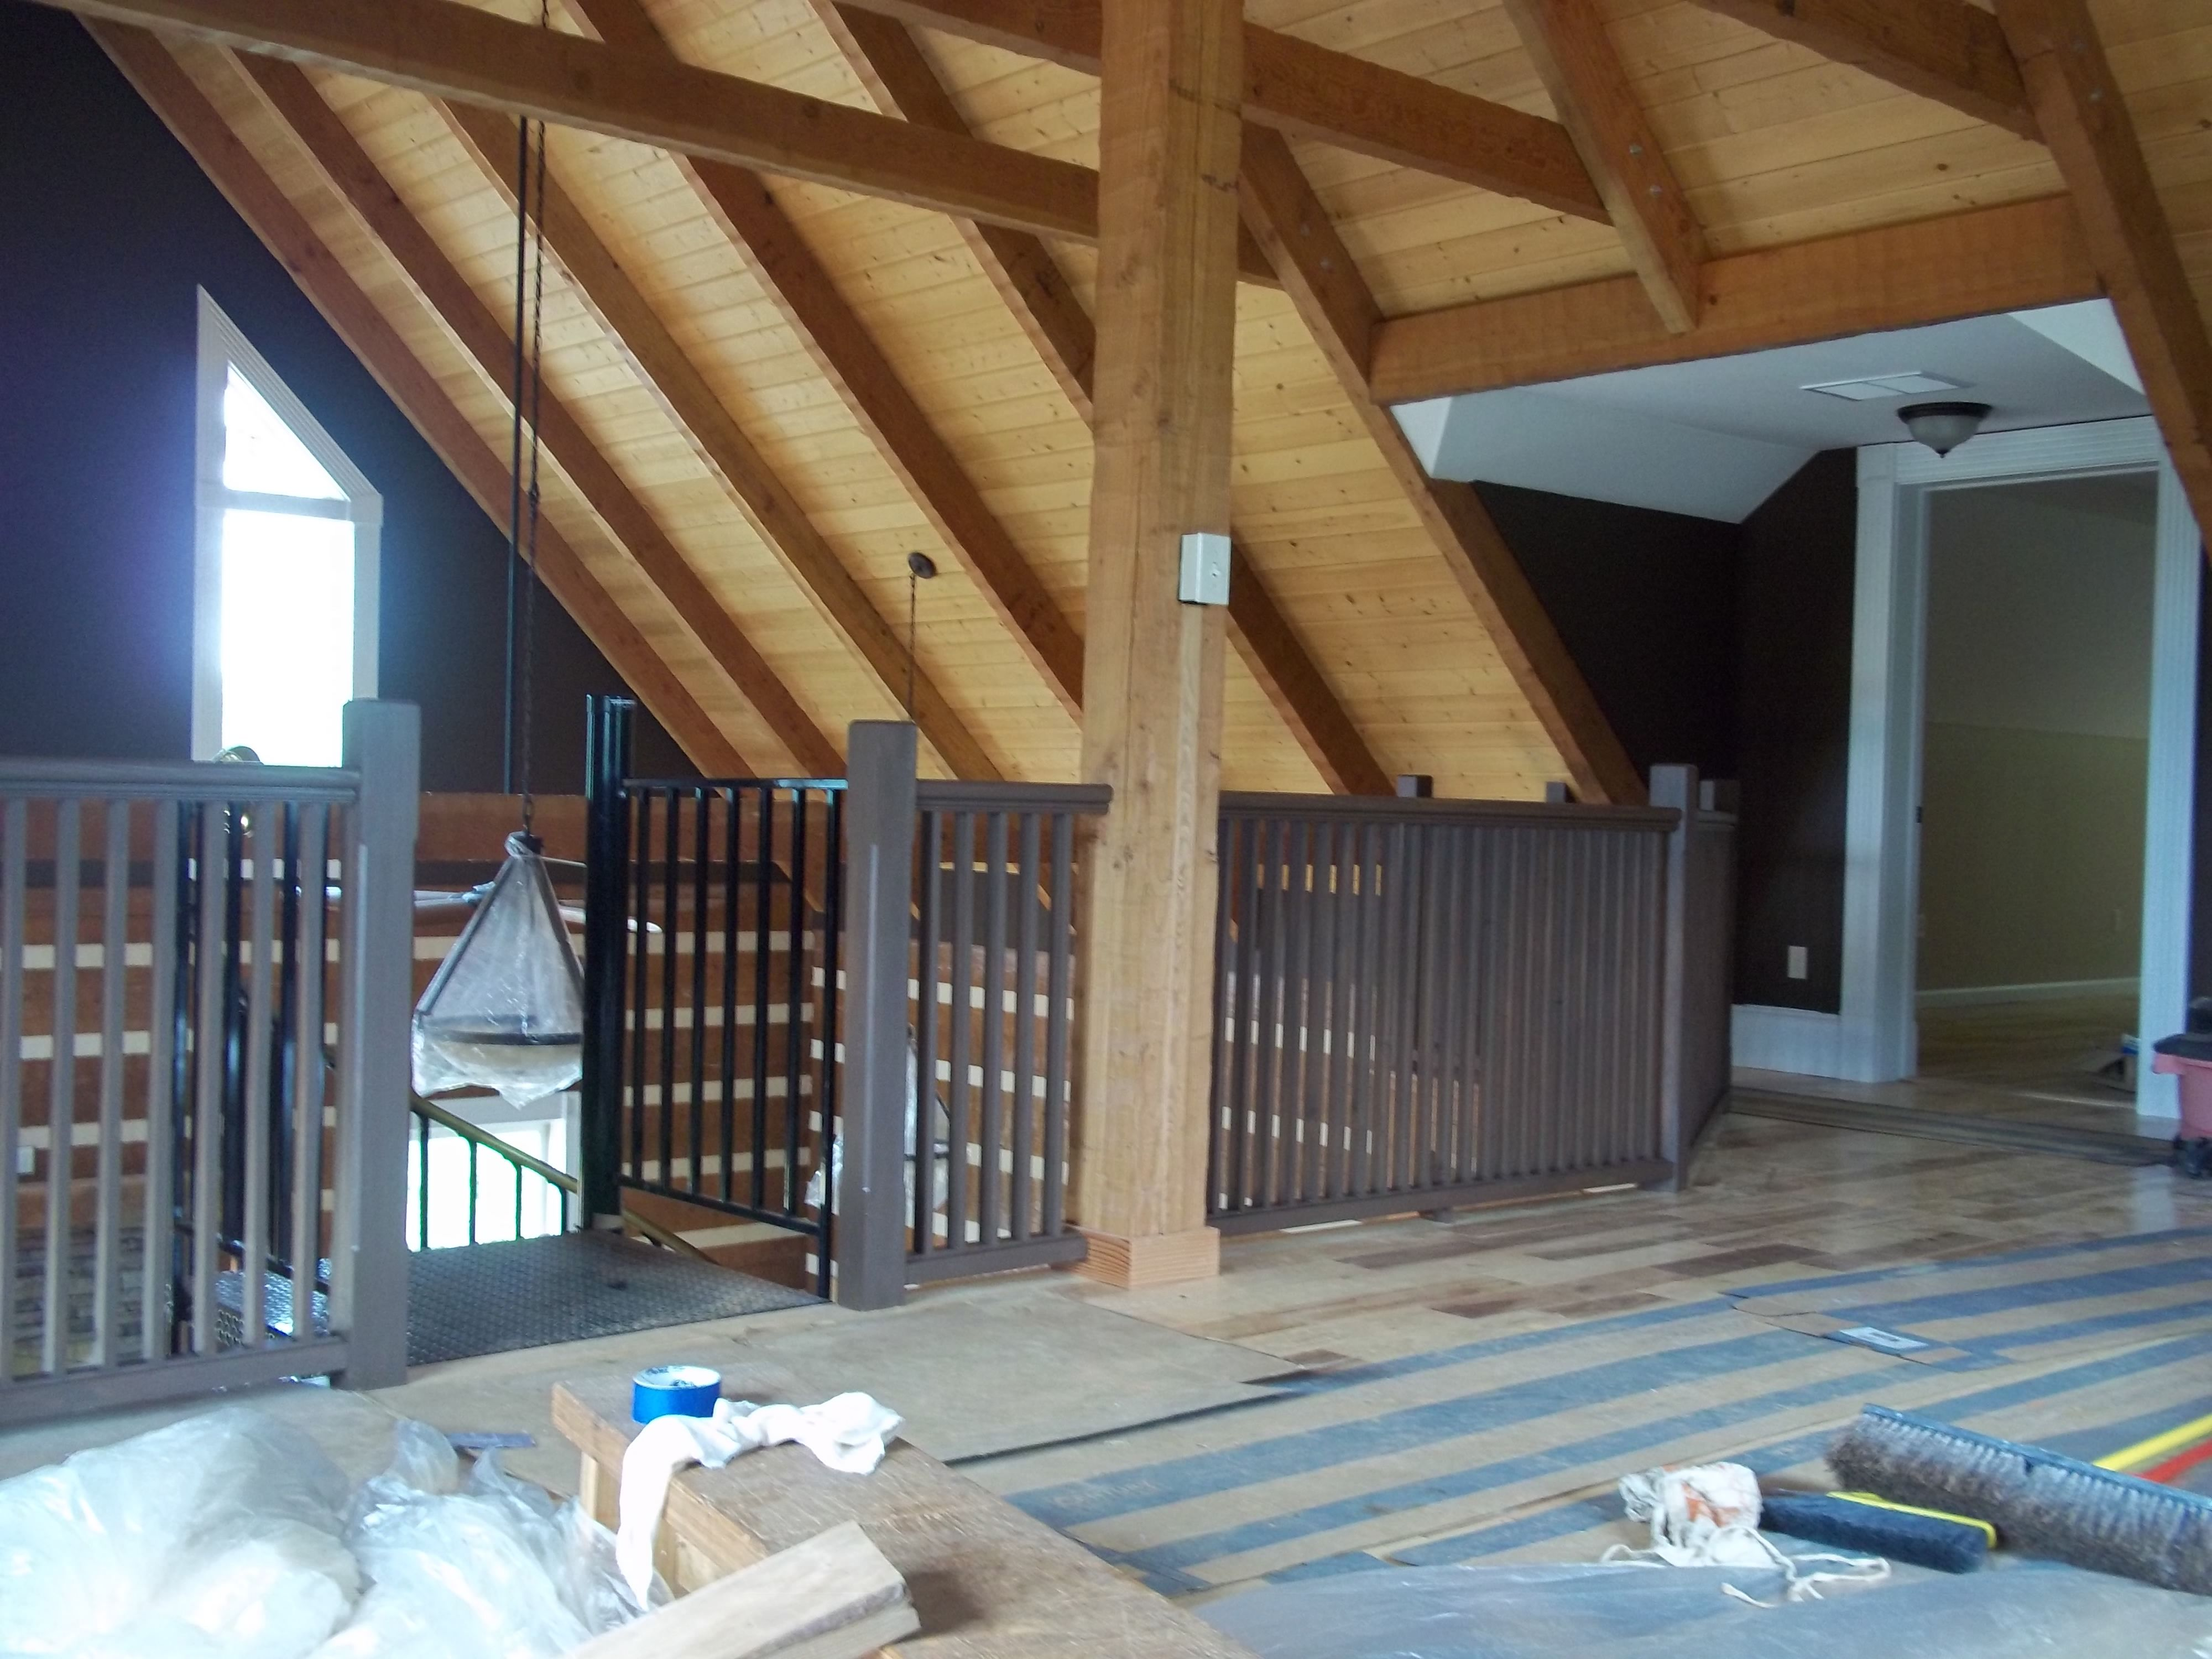 Cabin Interior Loft   Wall Color (Leather Chair), Wood Ceilings U0026 Beams  Sealed